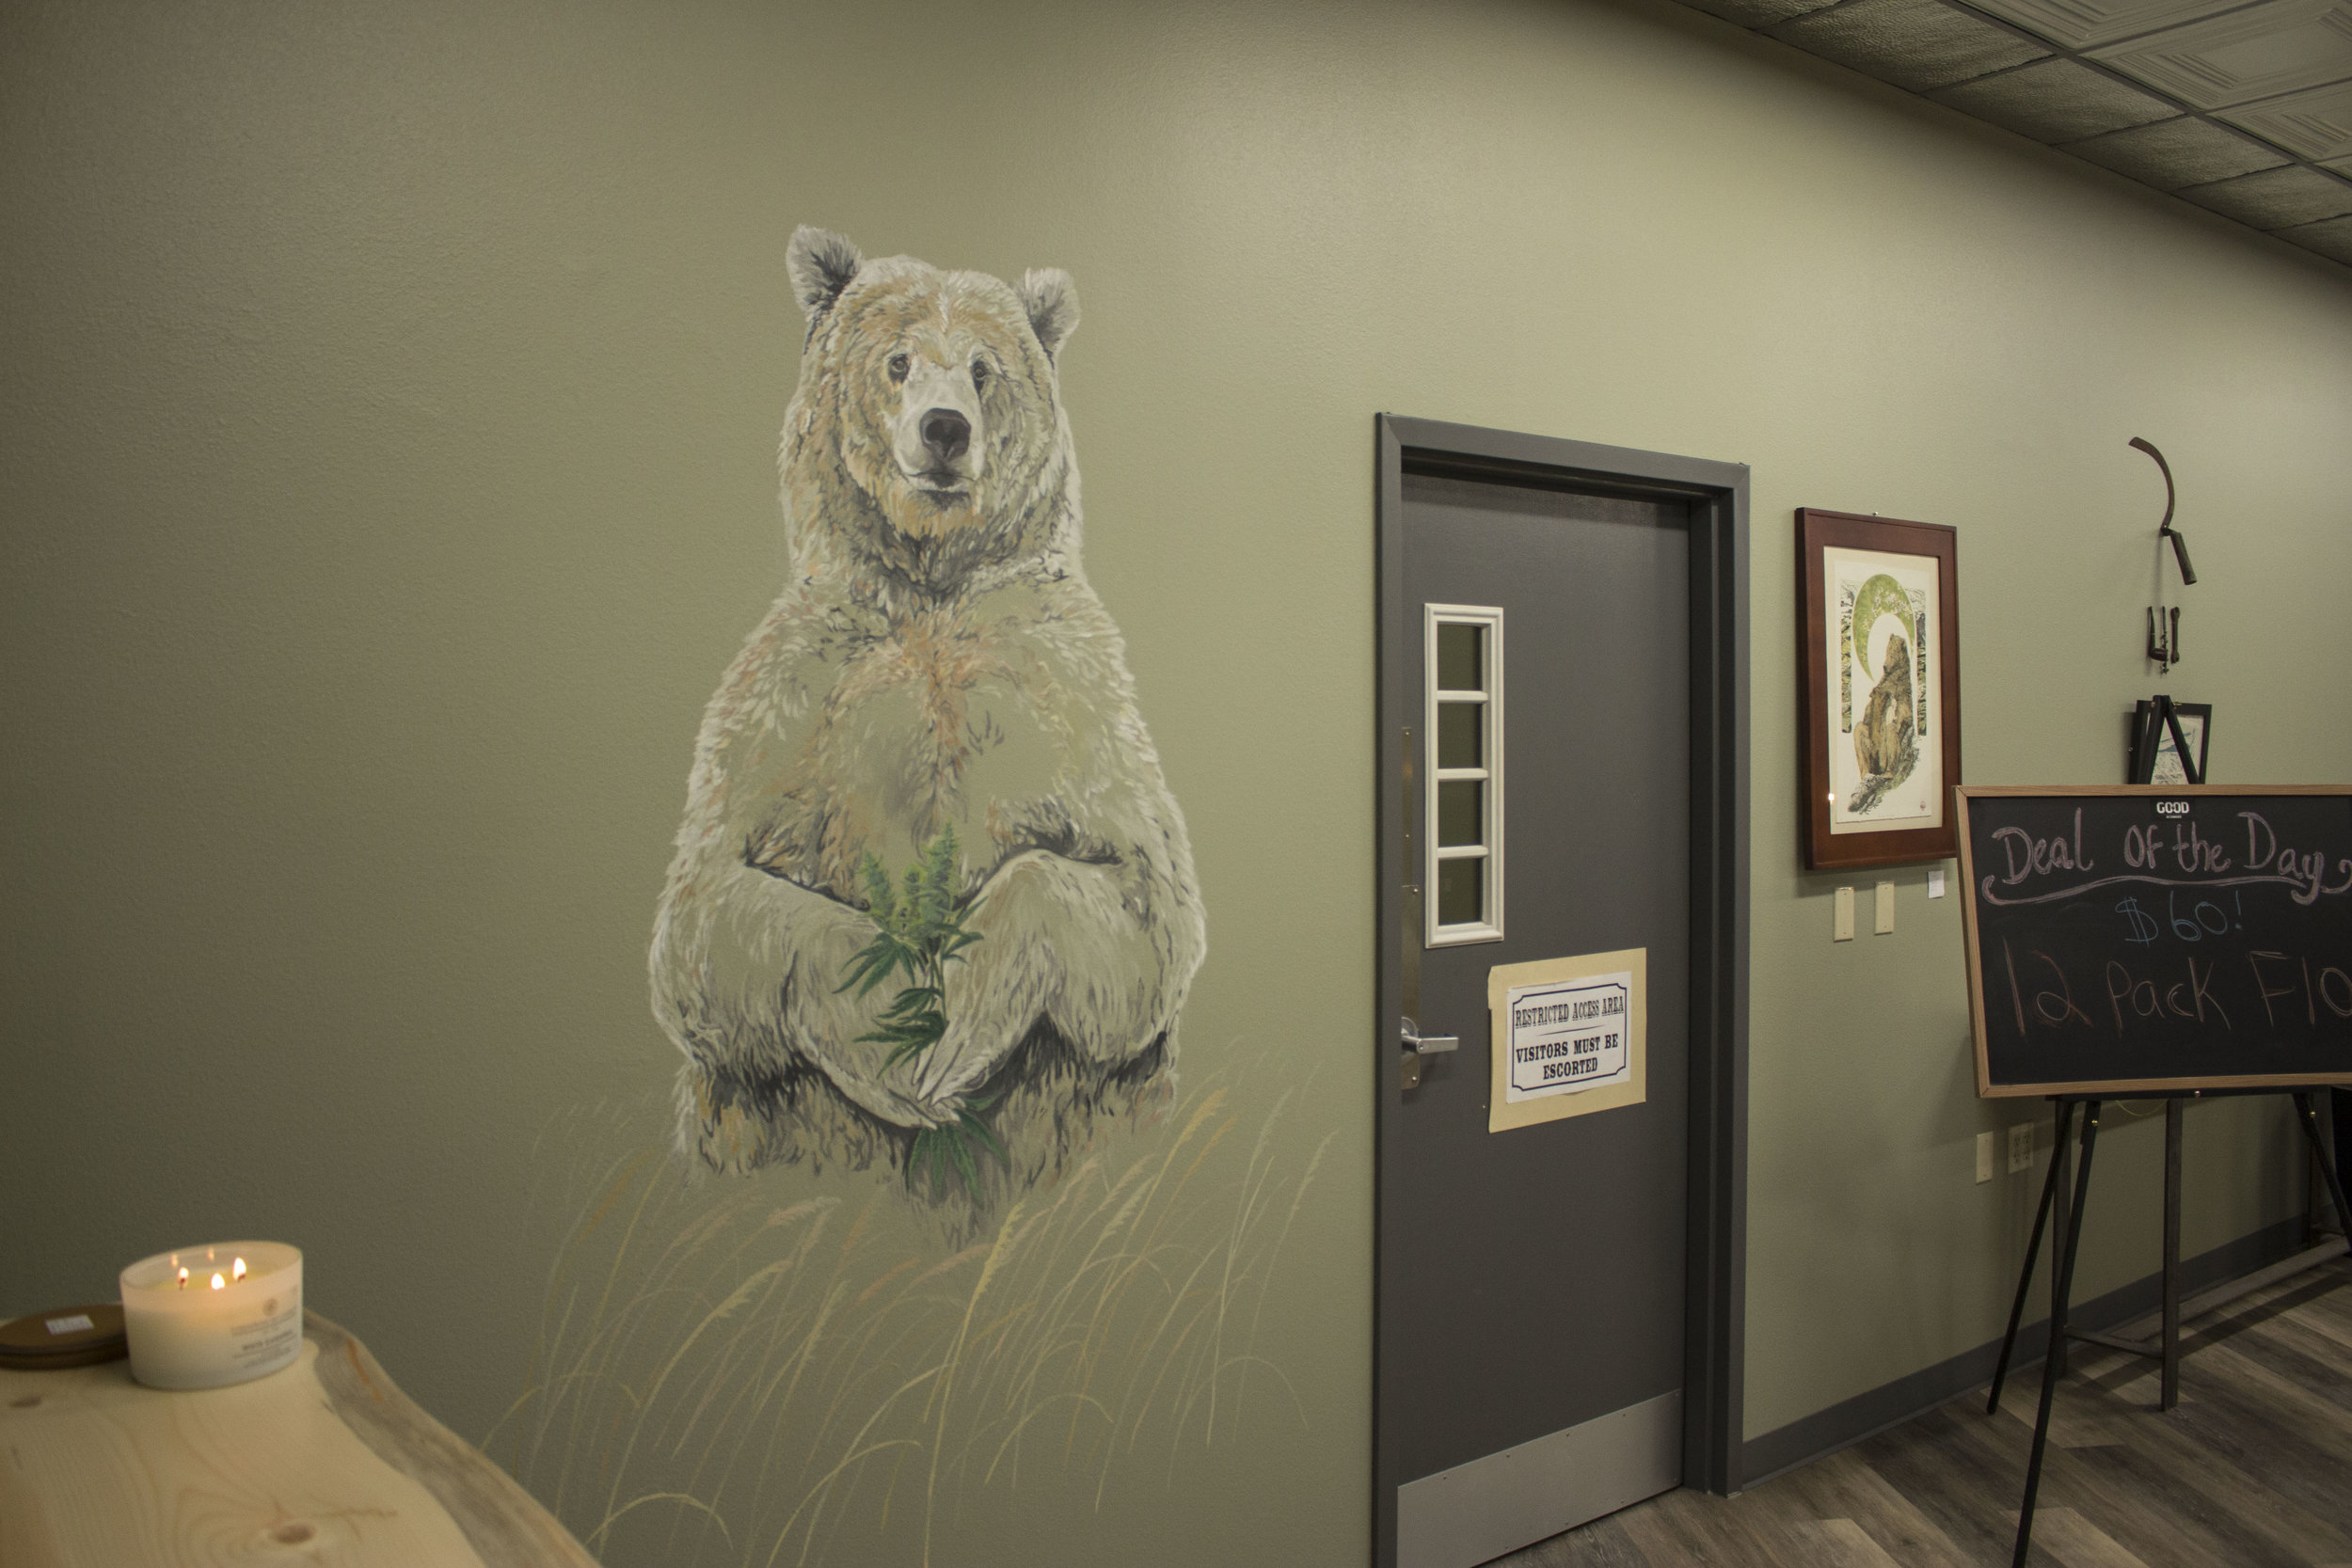 A mural commissioned by GOOD AK Cannabis in Fairbanks, Alaska.